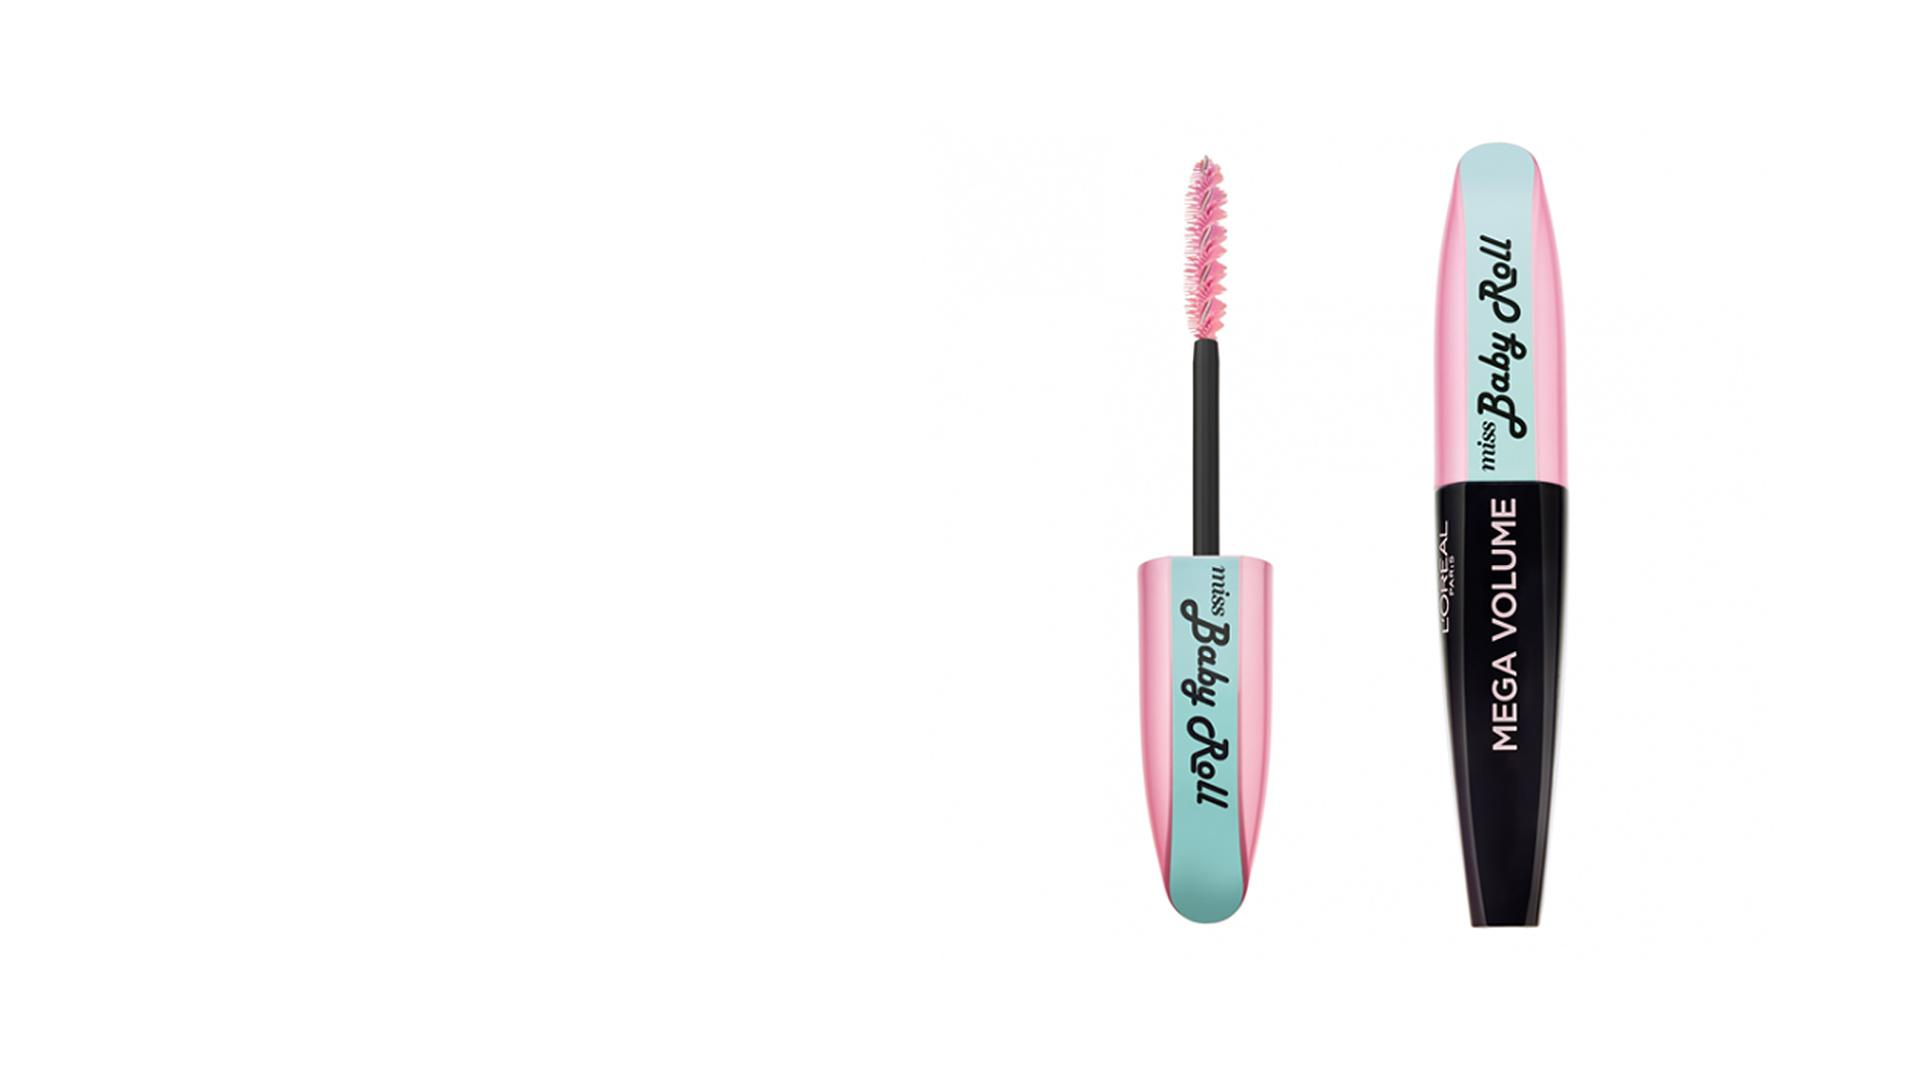 Miss Baby Roll Mascara - HelloOctoberXo - Drugstore Make Up Hype